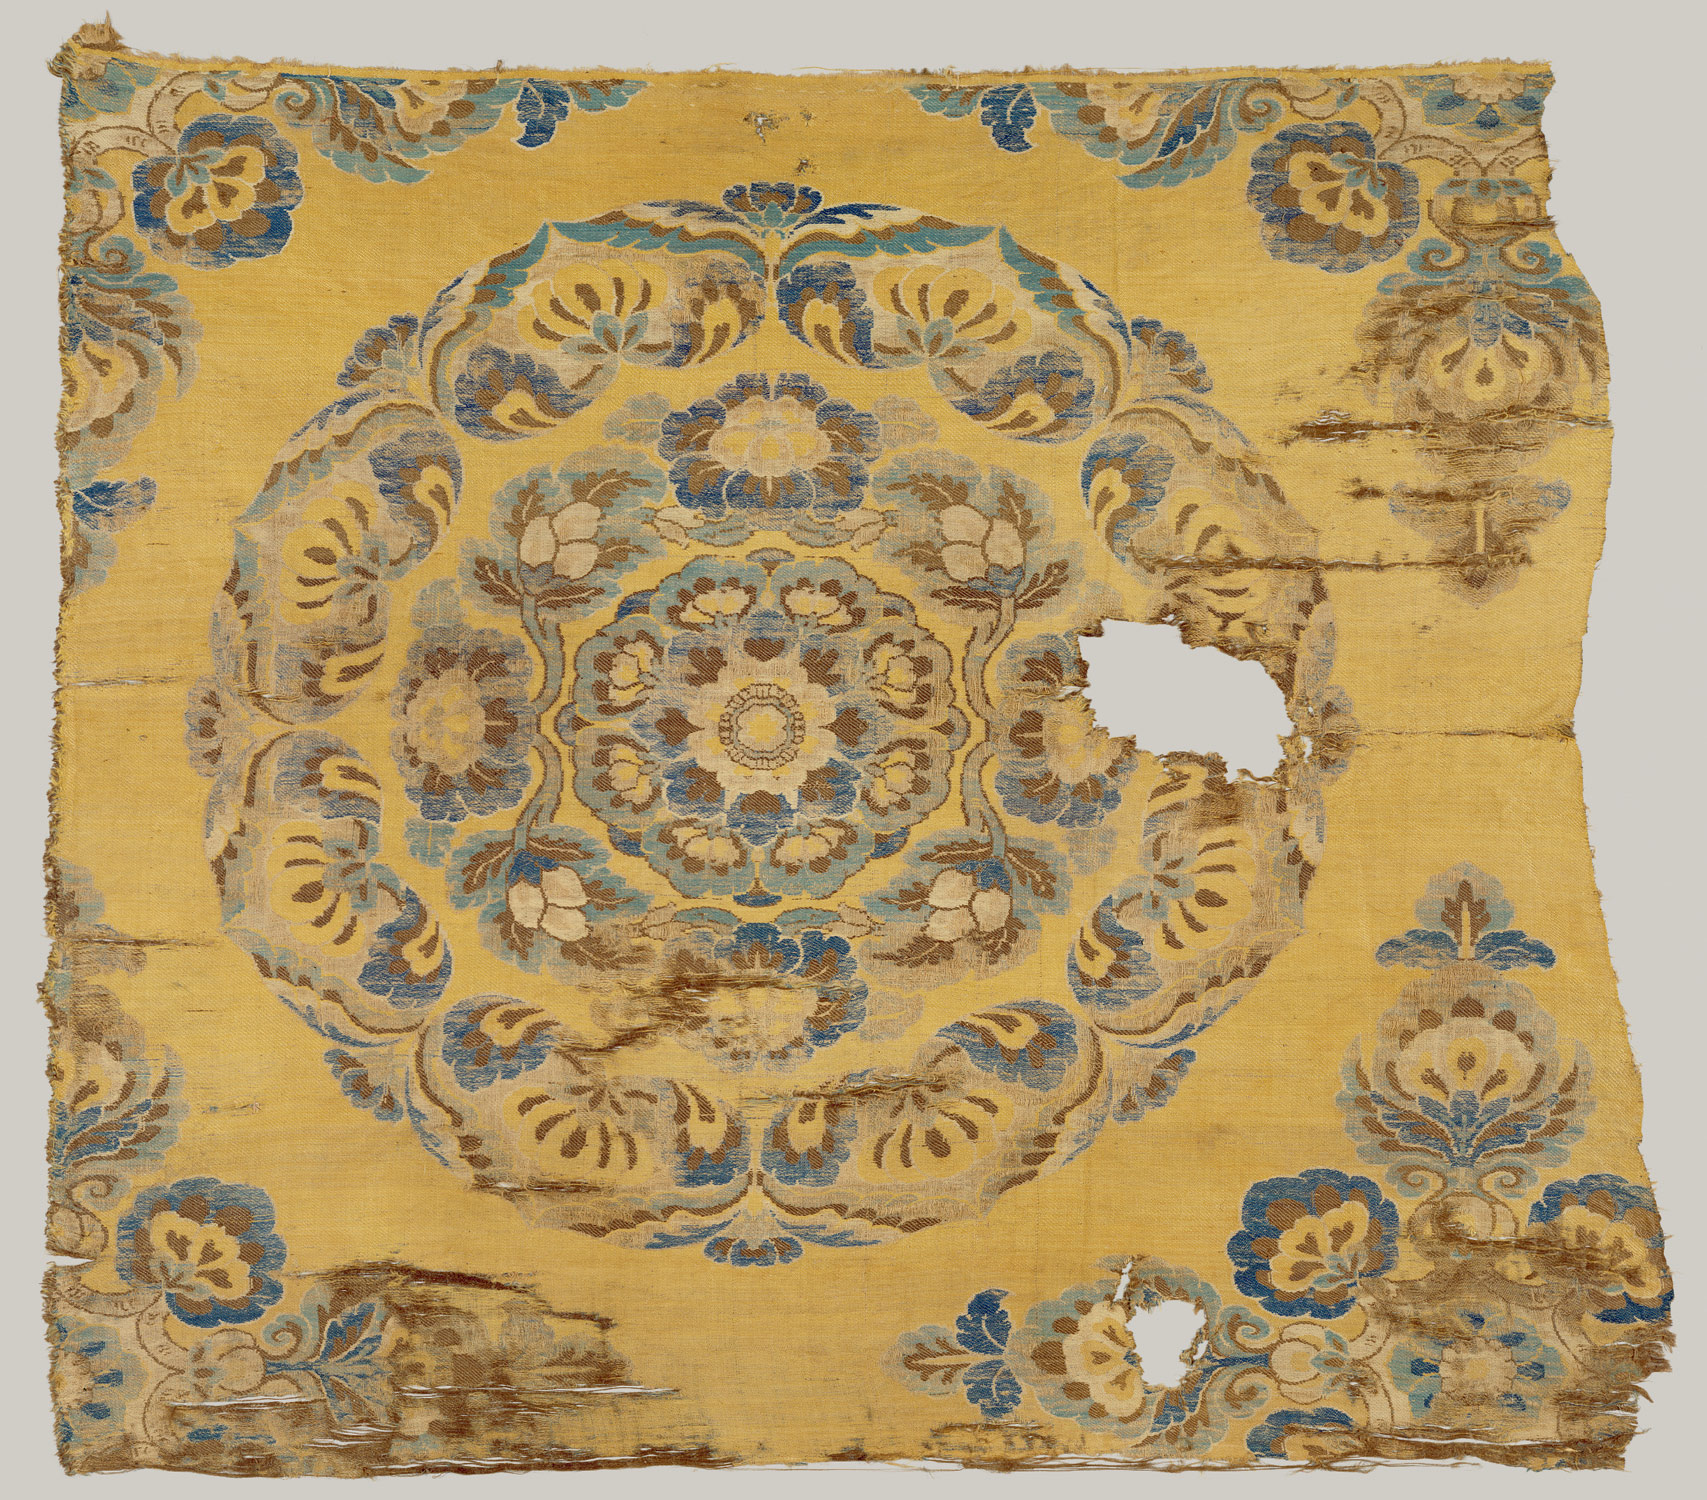 Textile with Floral Medallion